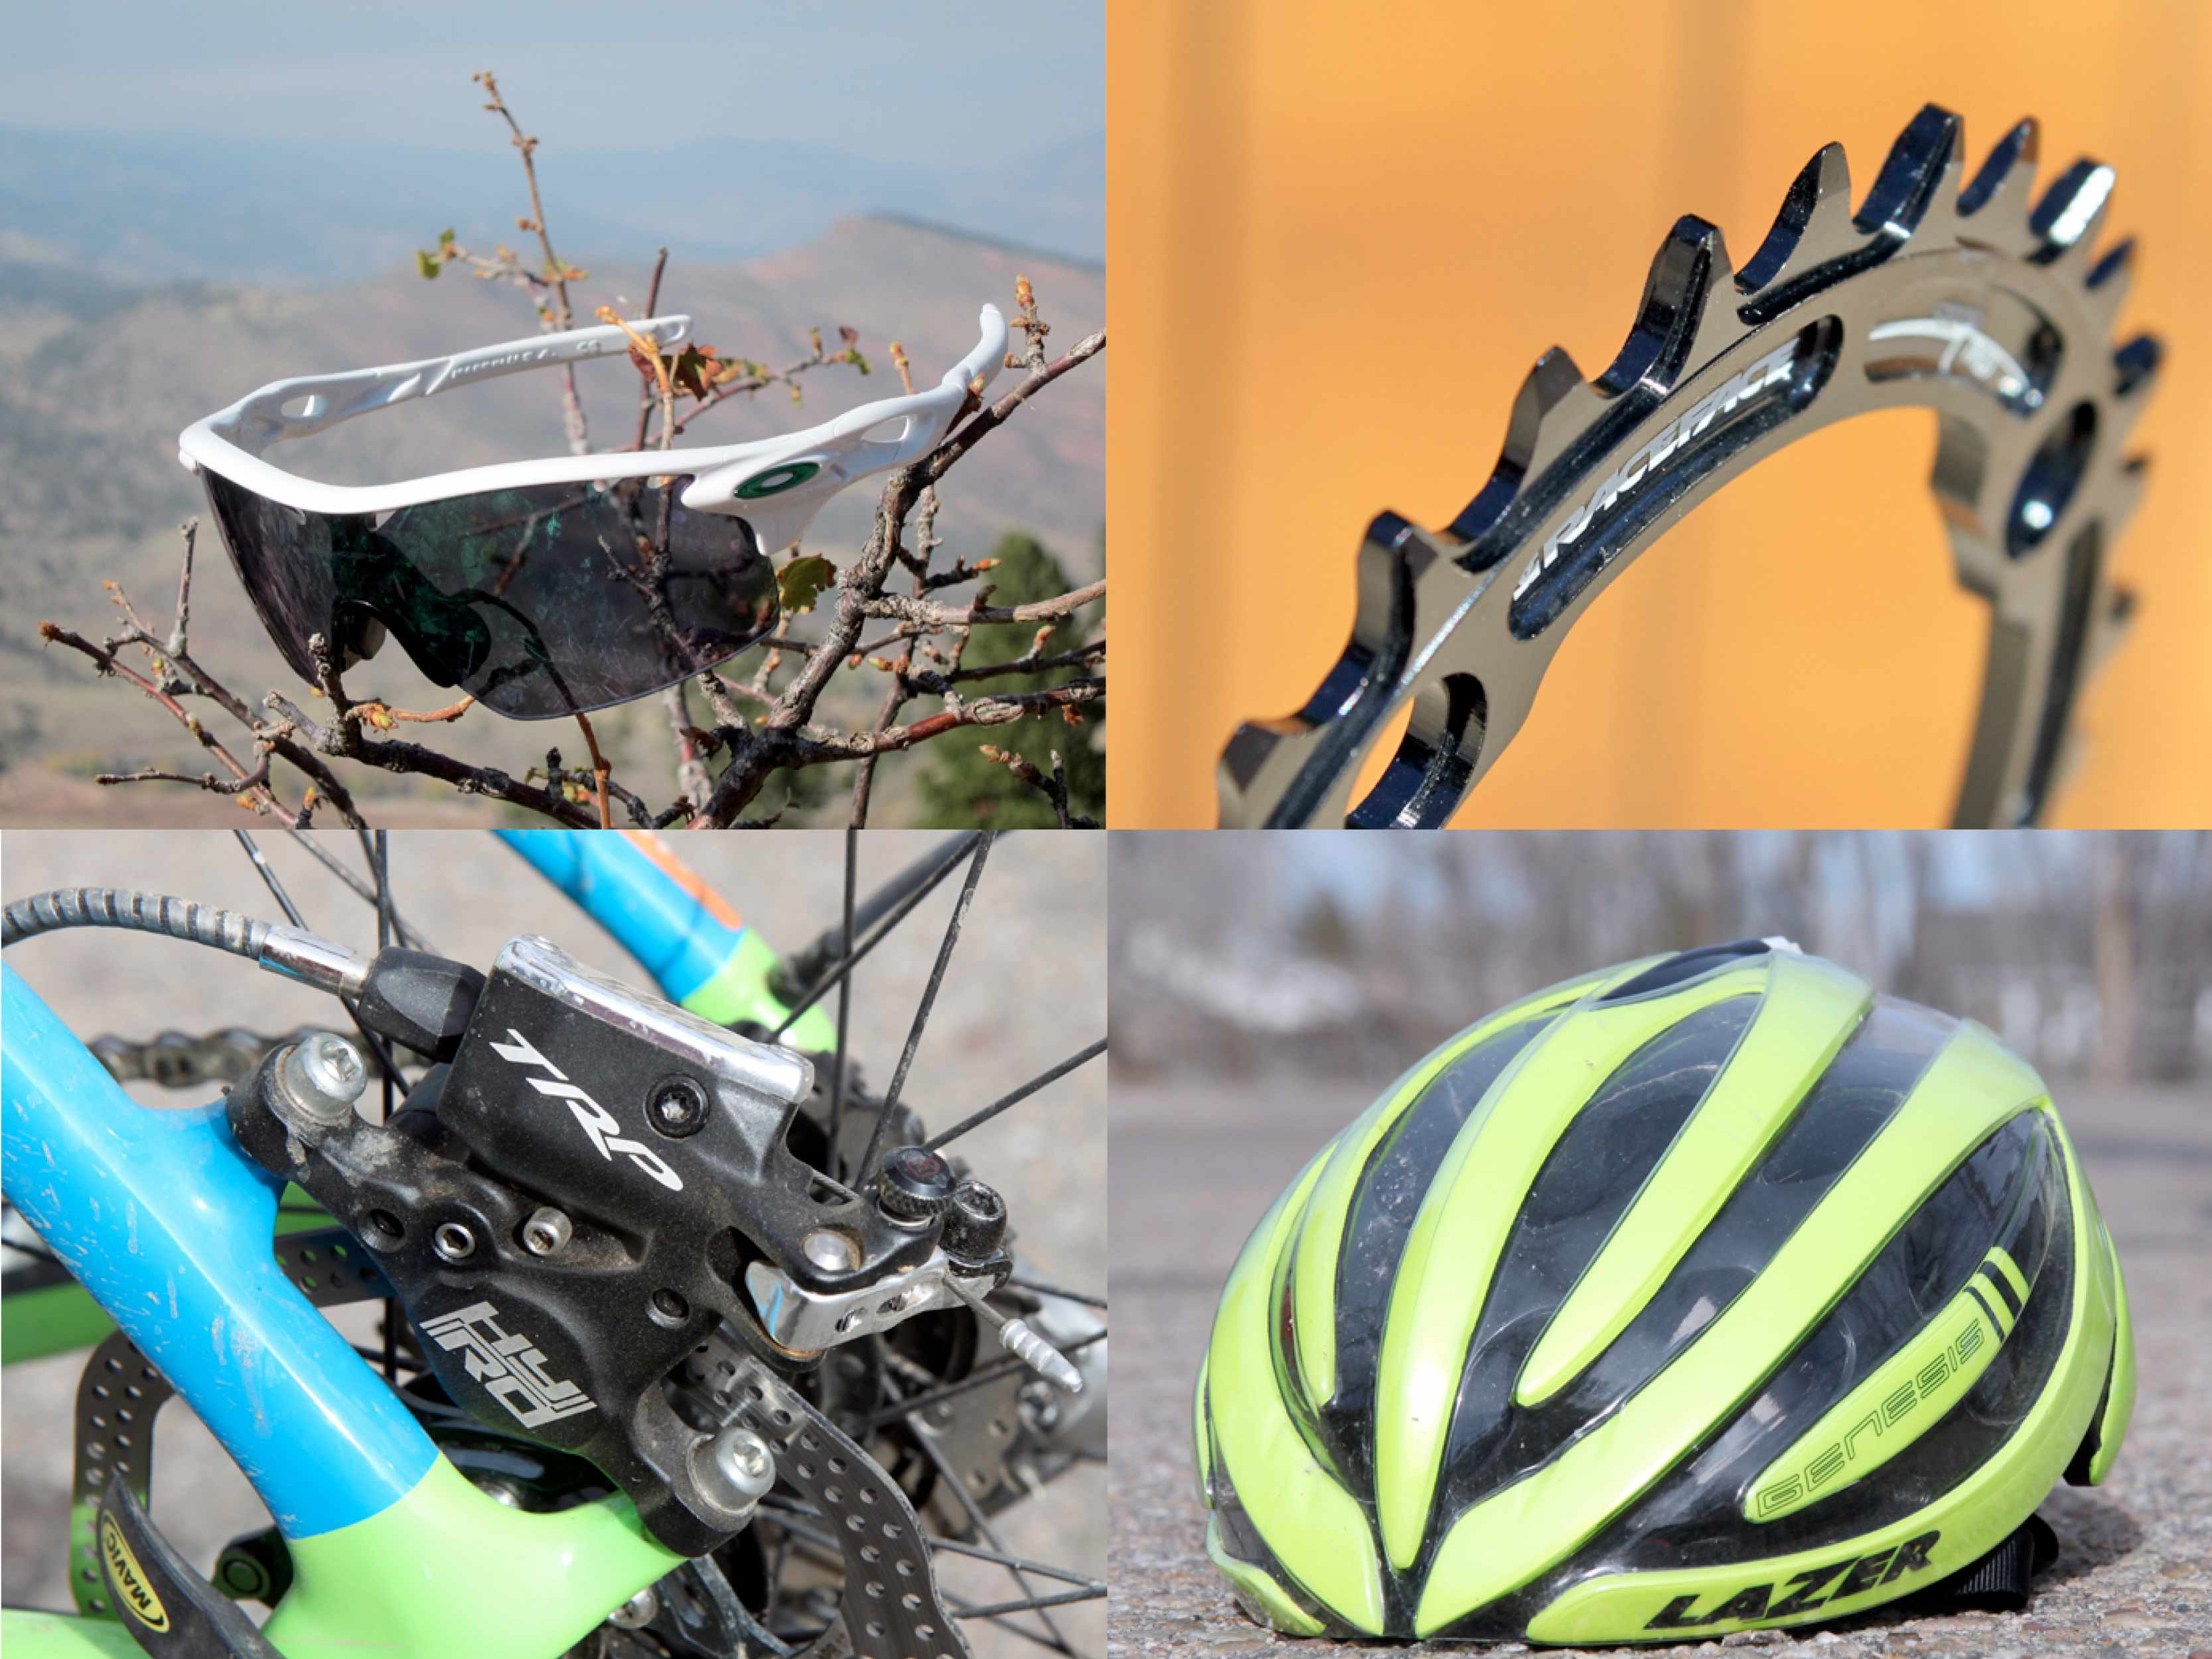 Some of James' picks of the best new bike kit of 2013